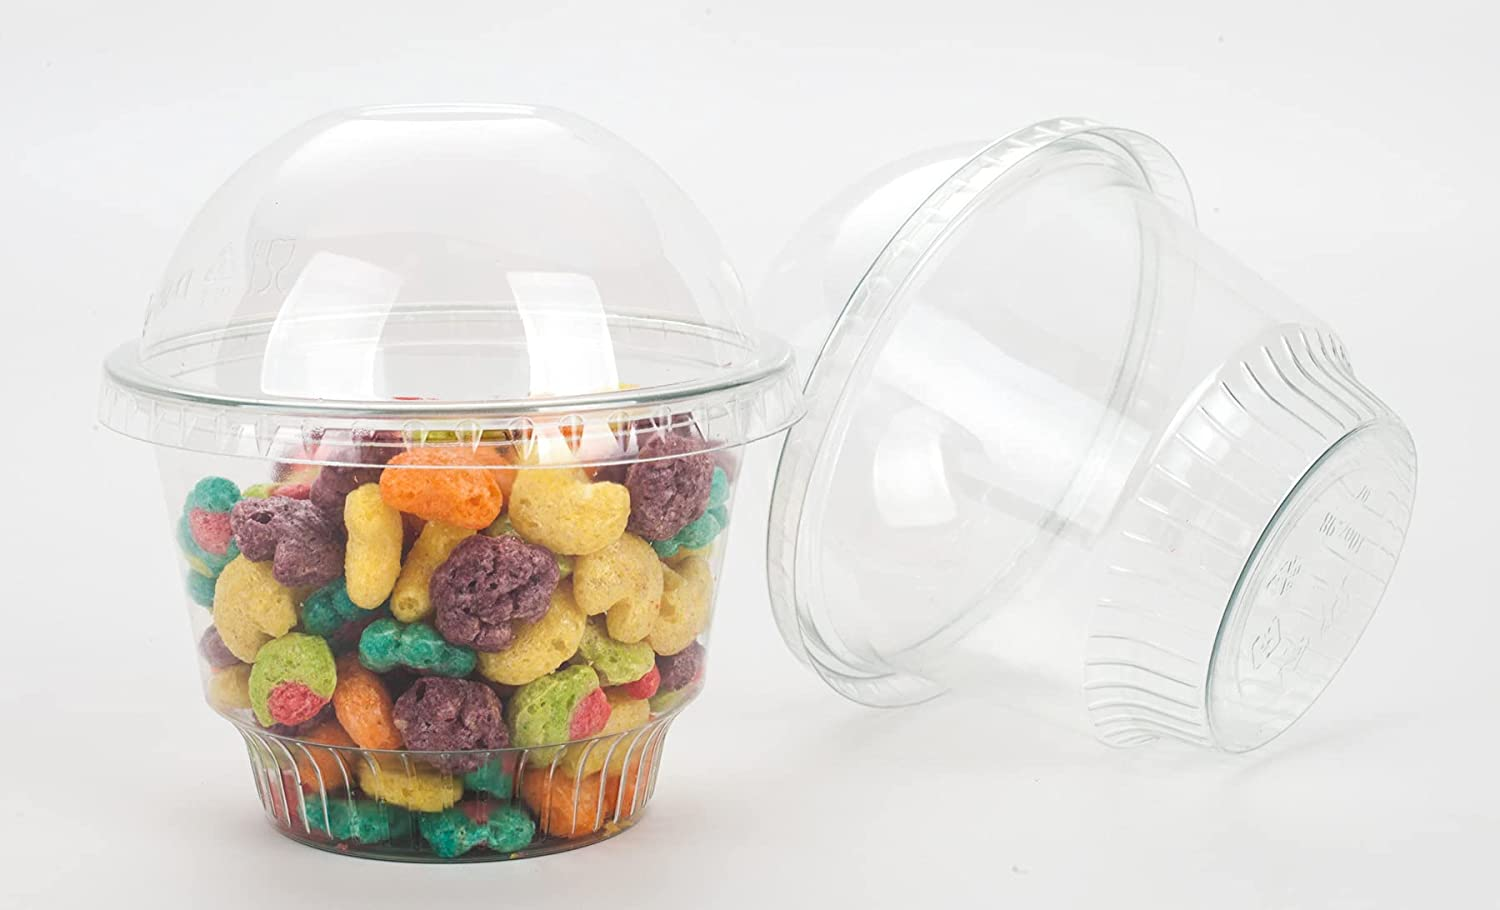 GOLDEN APPLE, 10oz-30sets Clear Plastic Cups for Ice Cream, Dessert Cups, Snack Bowl with Dome lids no Hole